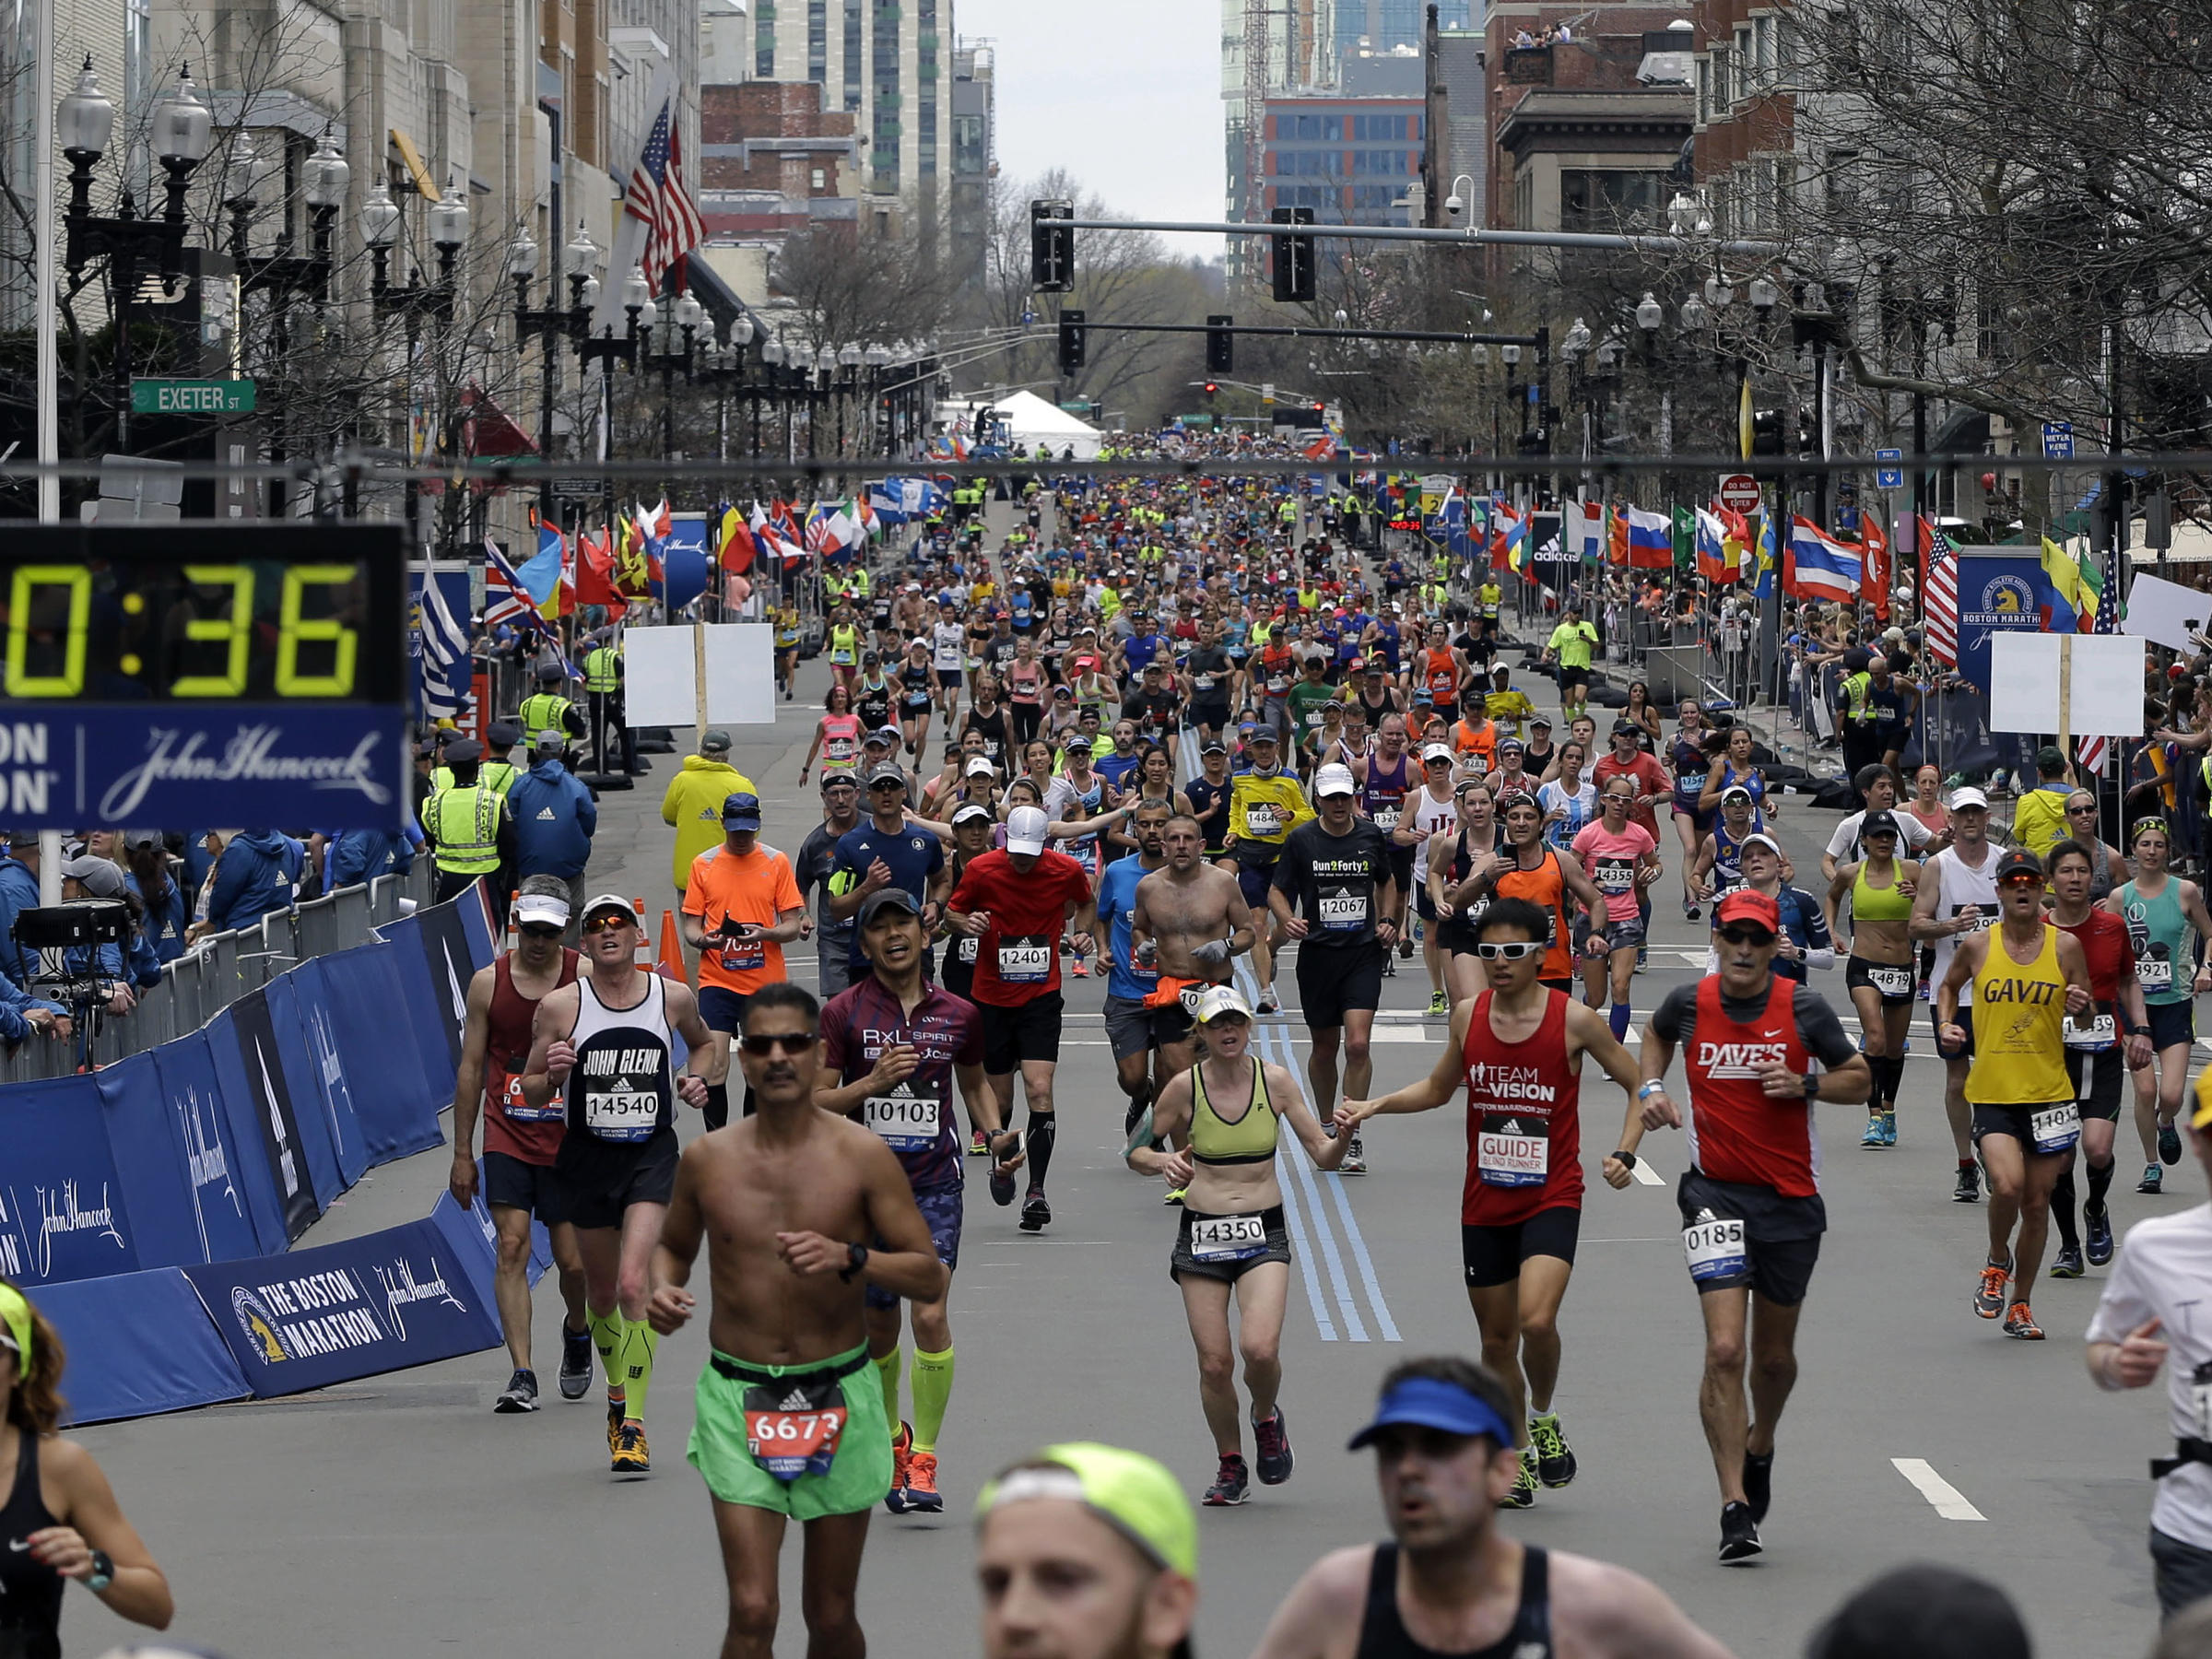 Adidas Sorry for Email Saying 'You Survived' Boston Marathon